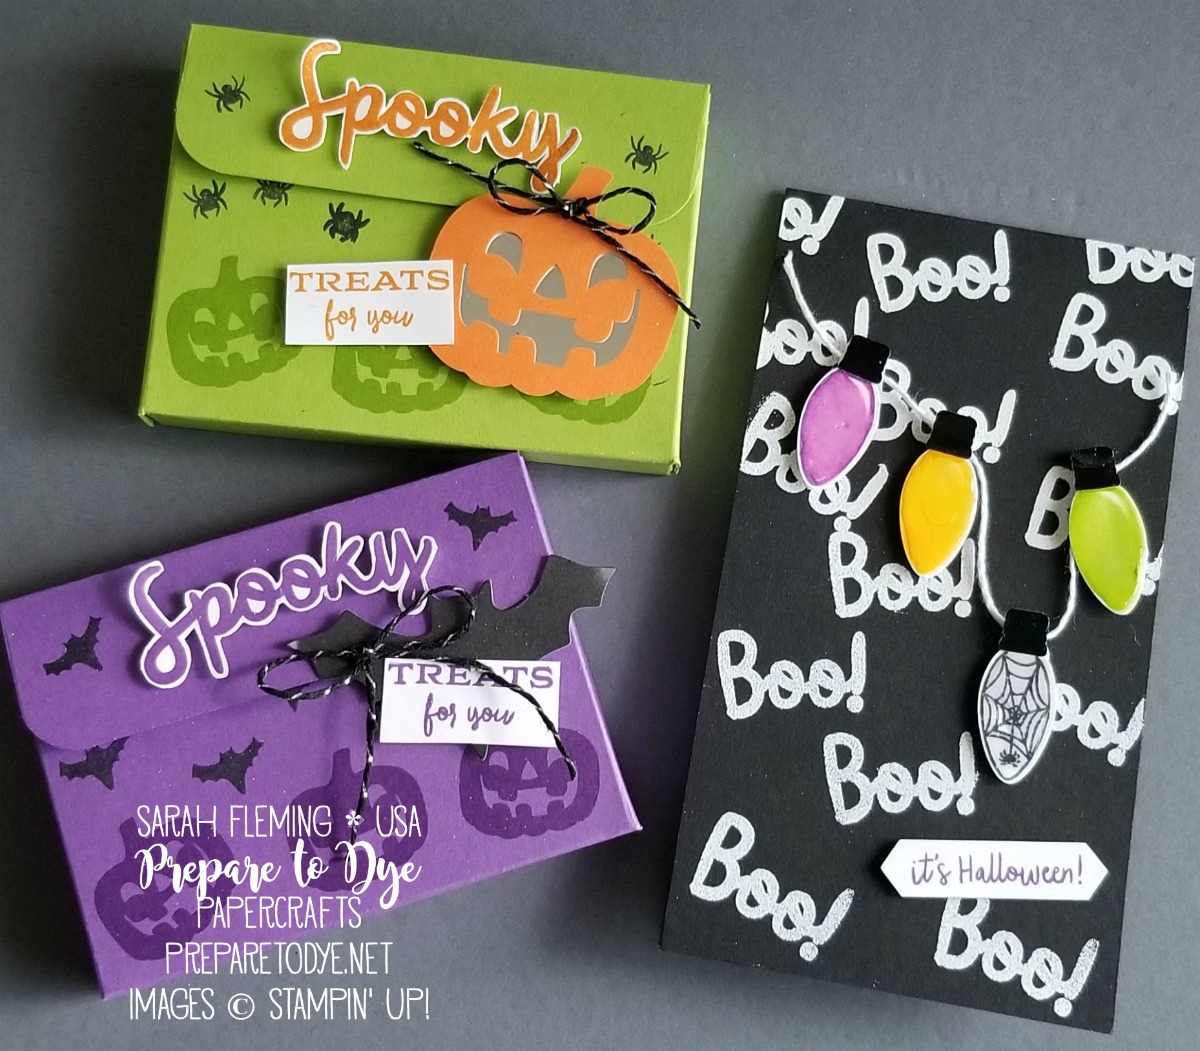 Stampin' Up! September 2018 Paper Pumpkin alternative projects - spooky treat box for Ice Cubes gum and skinny card - with Making Every Day Bright stamps and Christmas Bulb Builder Punch - VIDEO TUTORIAL - Sarah Fleming - Prepare to Dye Papercrafts